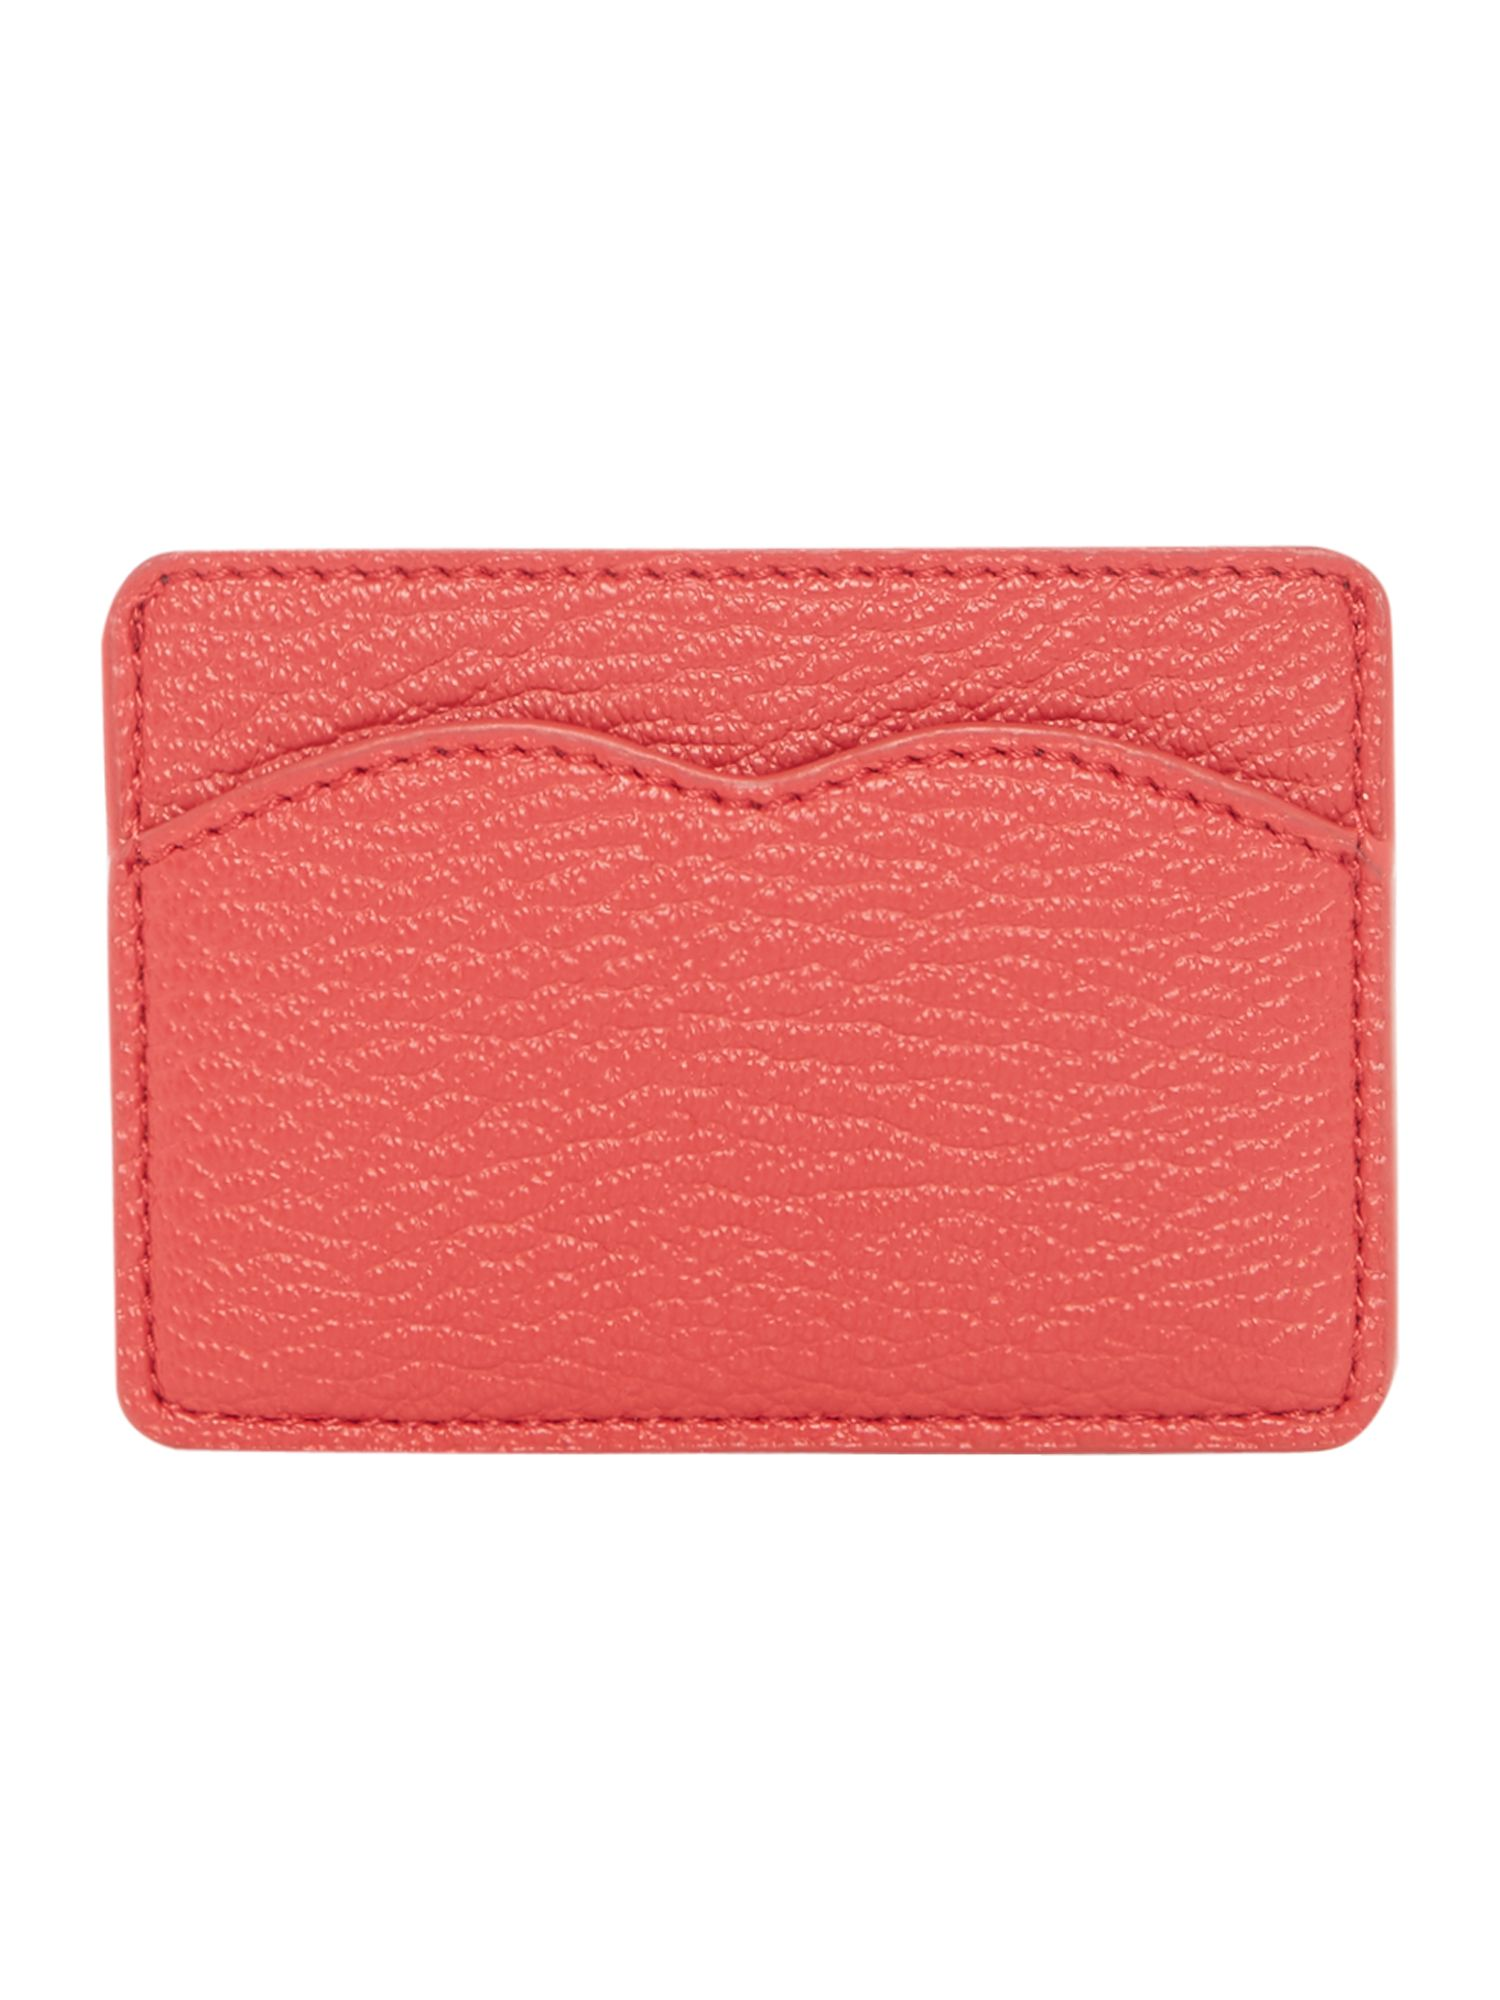 Lulu Guinness Cupid bow cardholder, Red